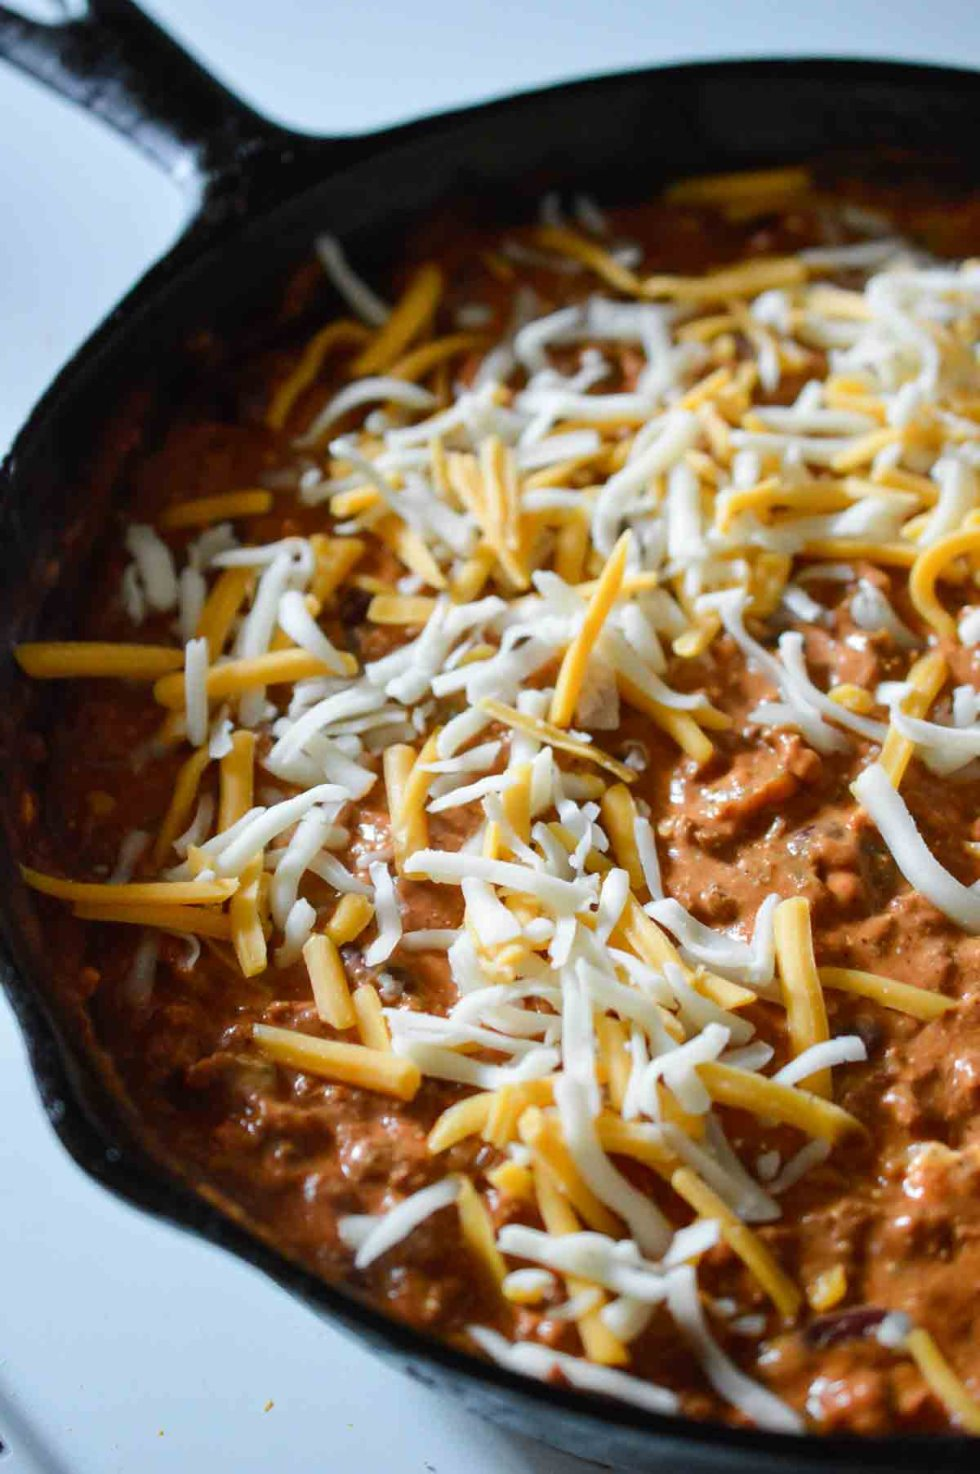 chili dip topped with shredded cheese in cast iron pan